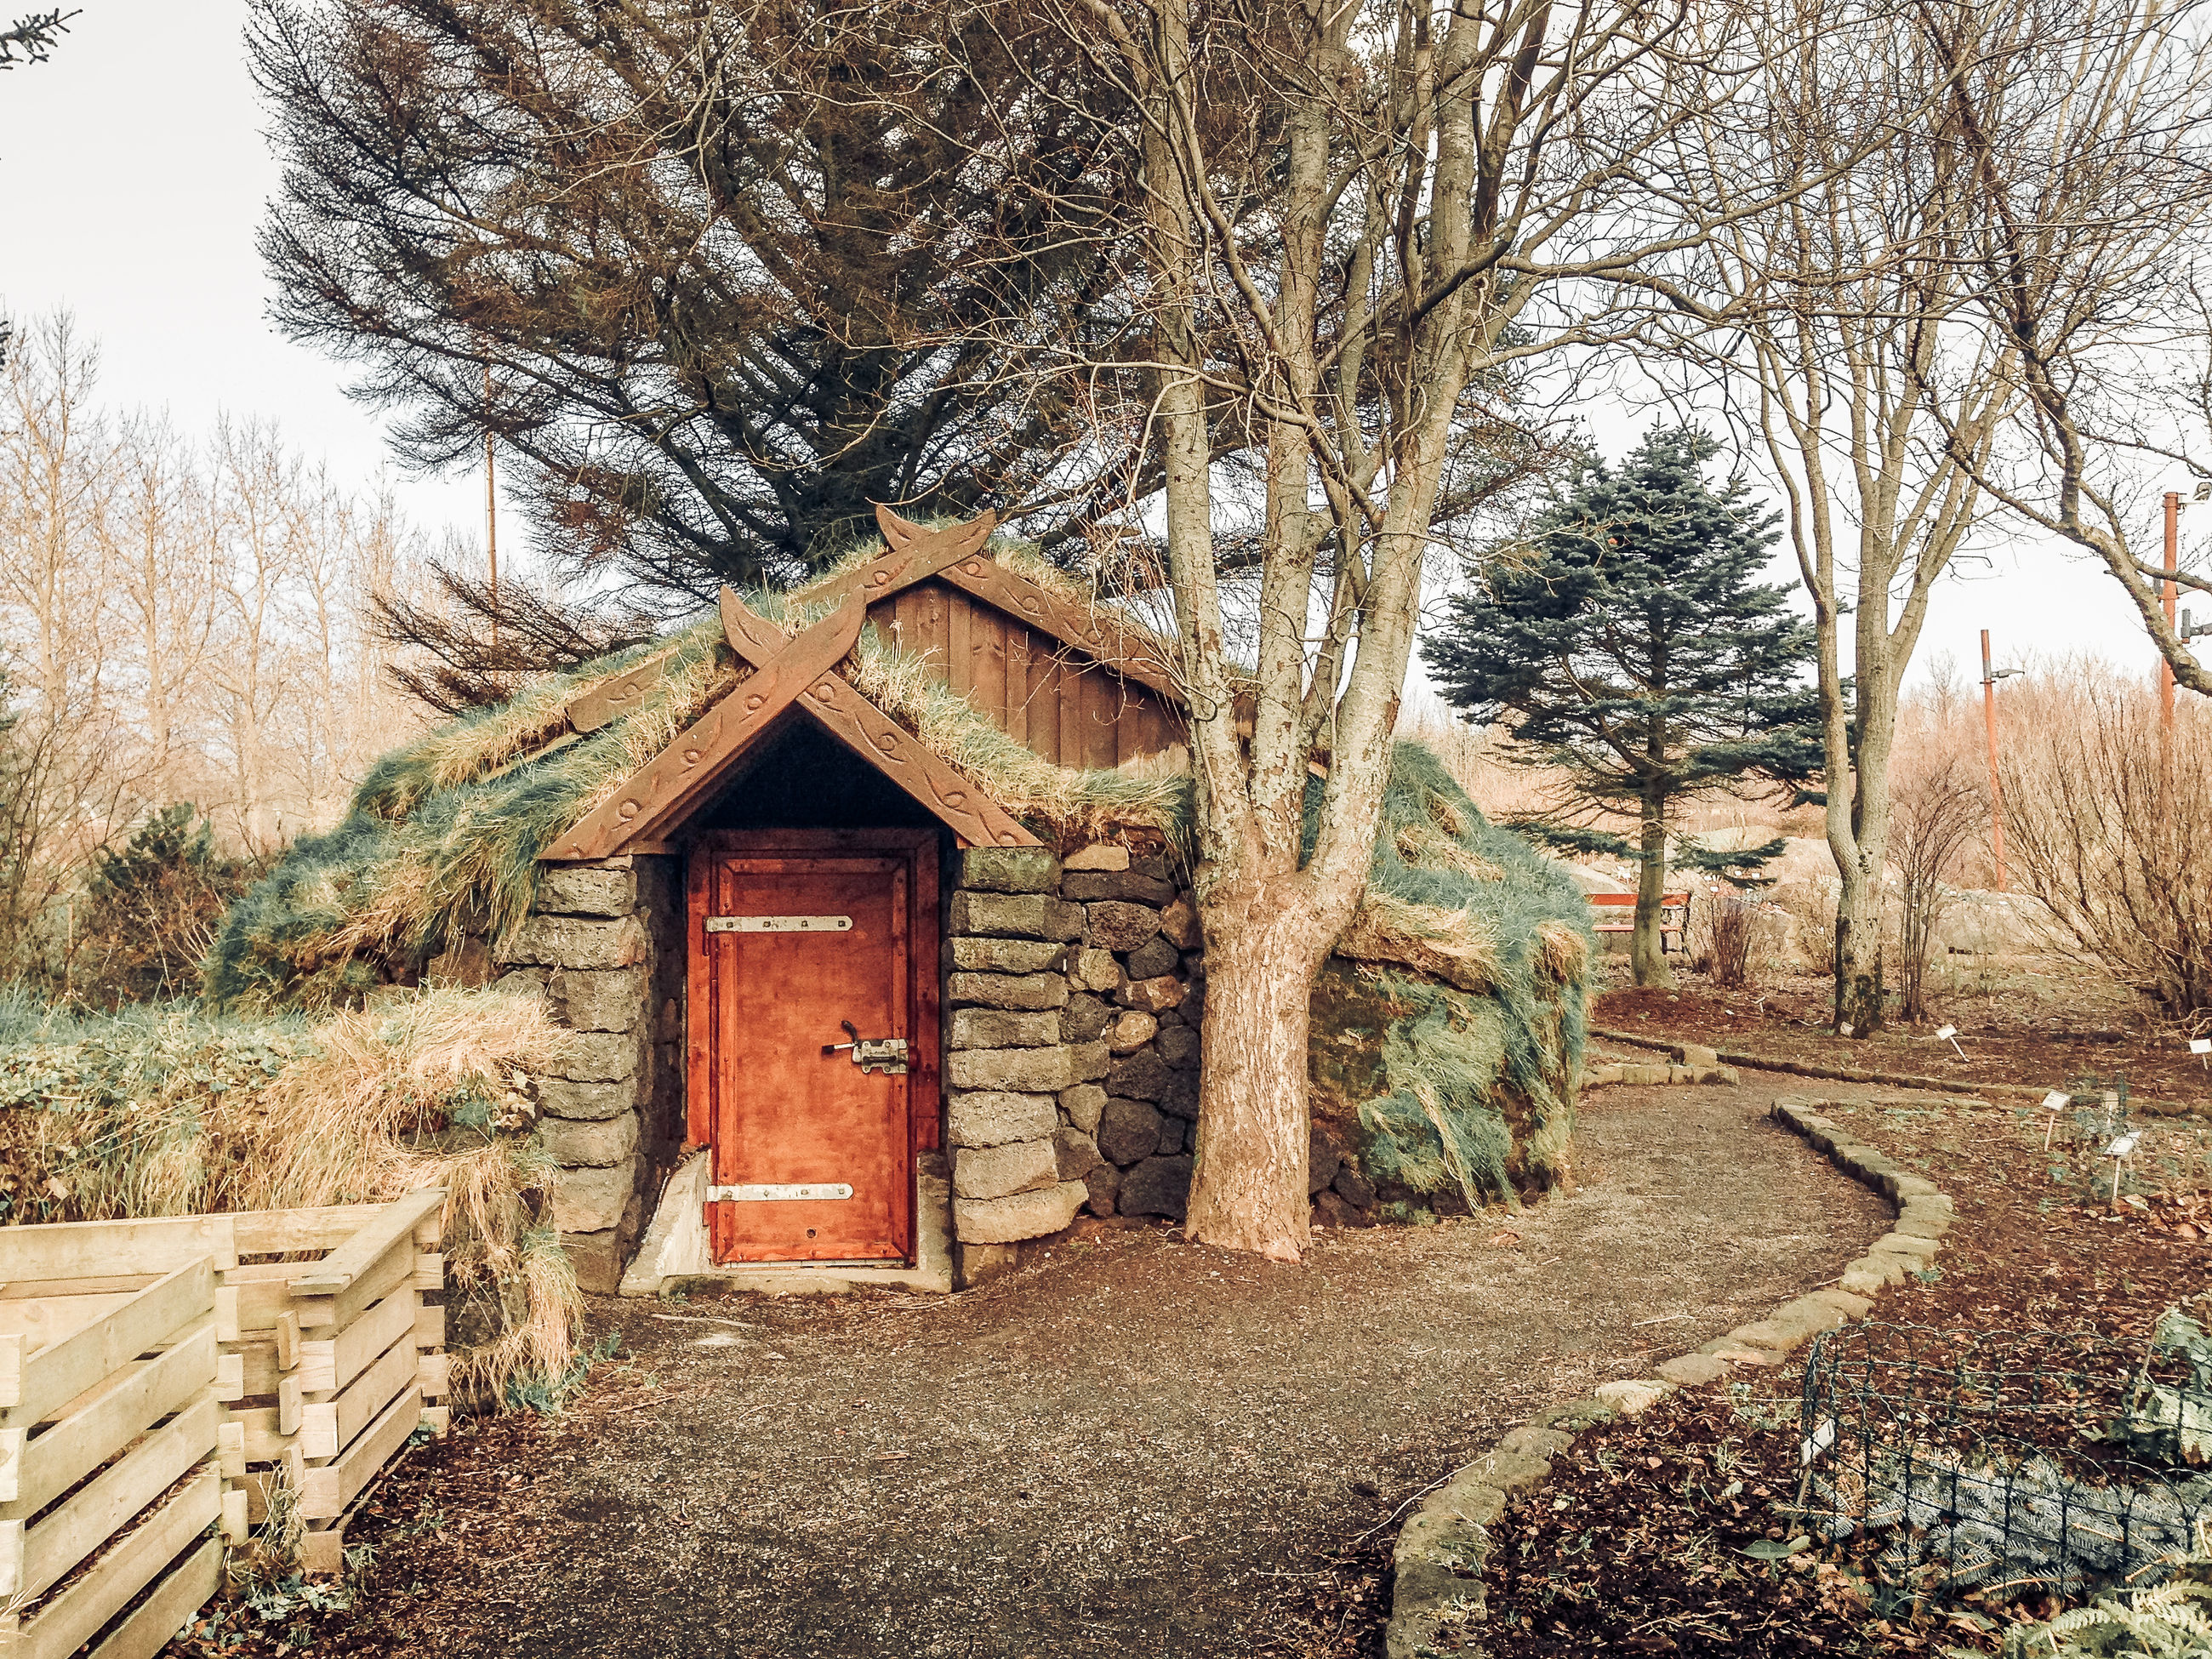 tree, architecture, built structure, plant, no people, building exterior, day, building, nature, bare tree, the way forward, direction, wood - material, growth, house, hut, land, outdoors, sky, landscape, cottage, cabin